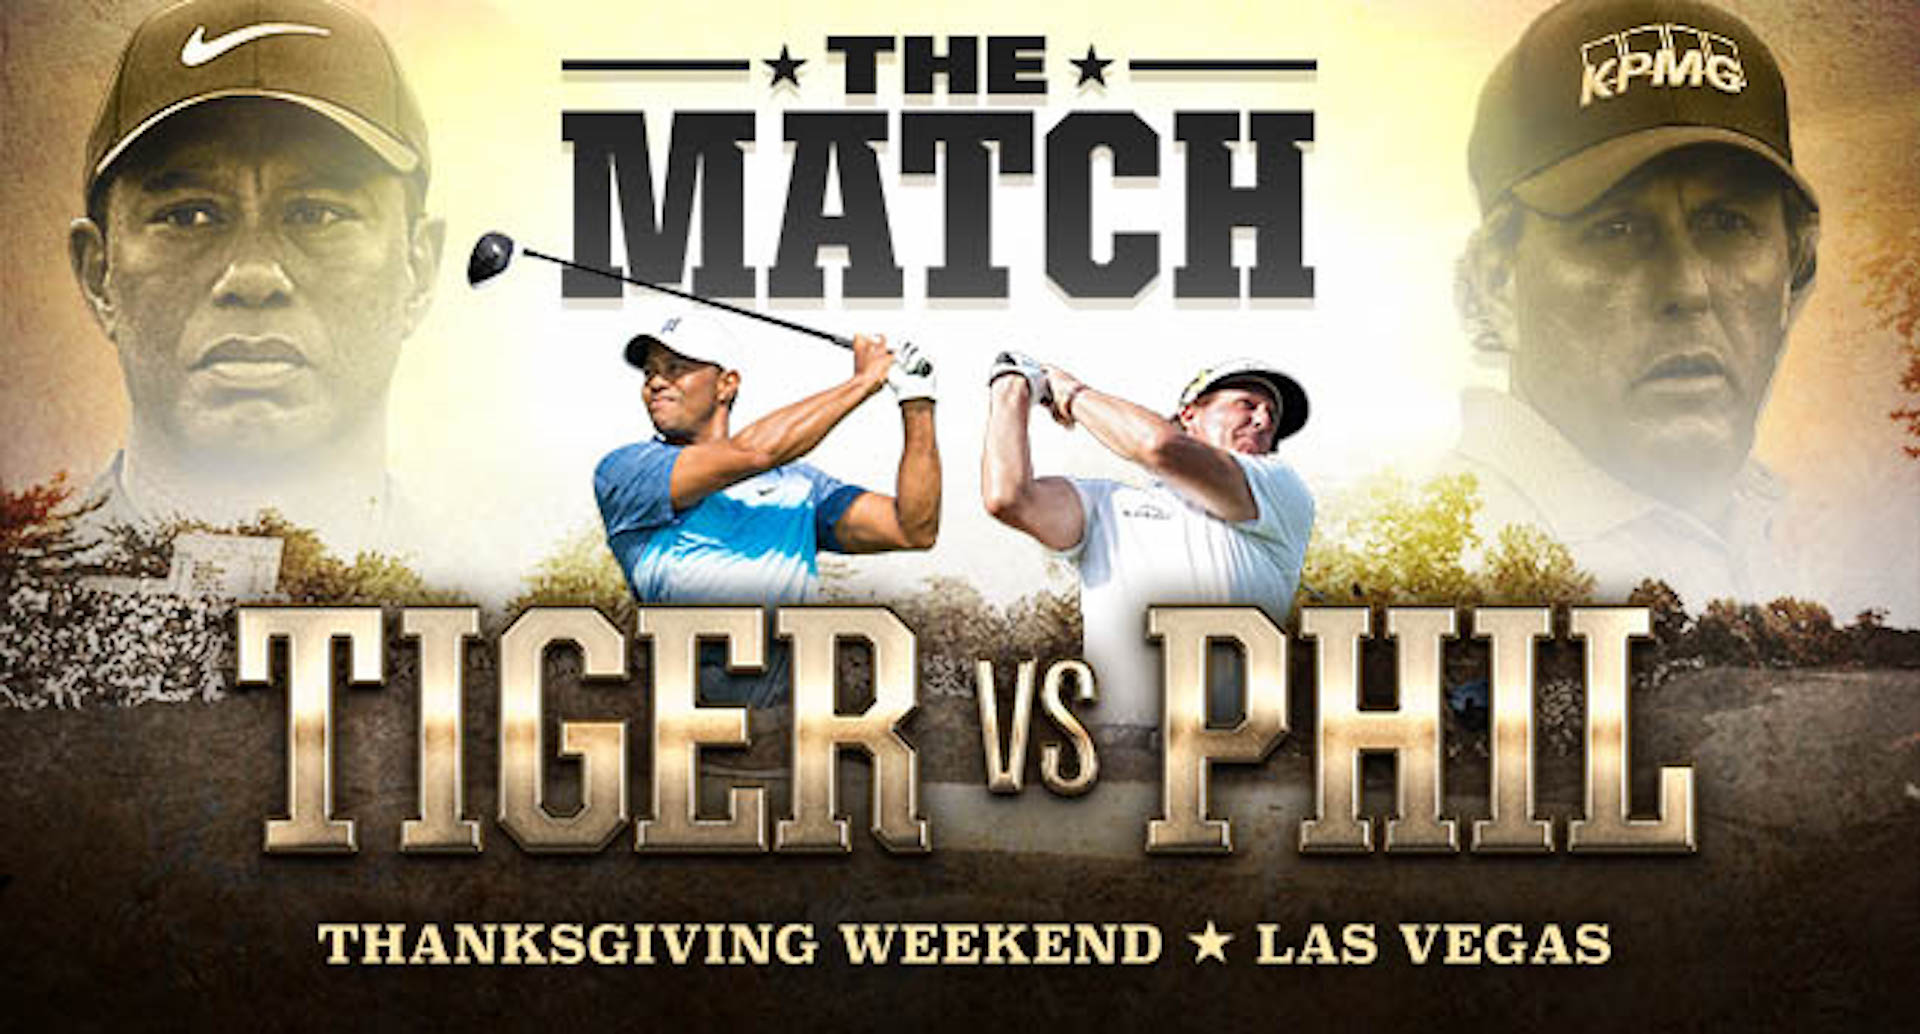 How to watch Phil Mickelson versus Tiger Woods